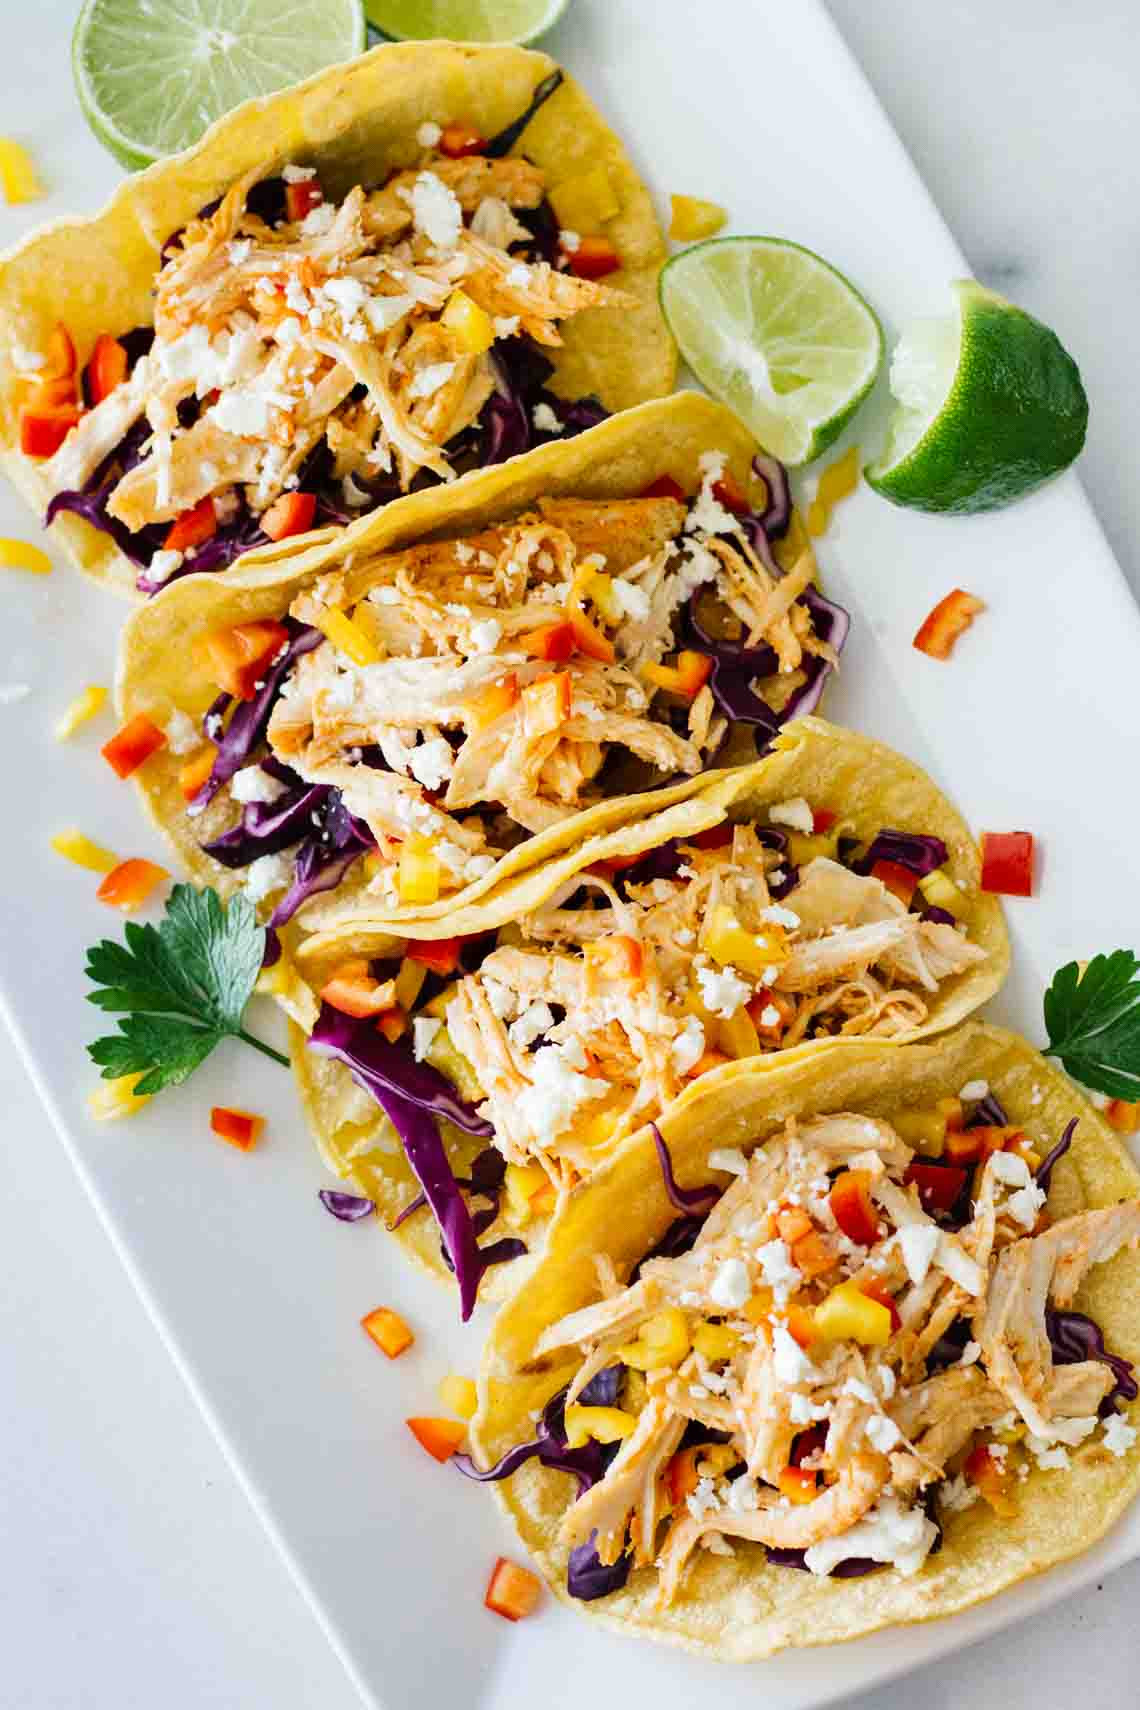 Healthy Recipe For Dinner  Healthy Sriracha Shredded Chicken Tacos Jar Lemons